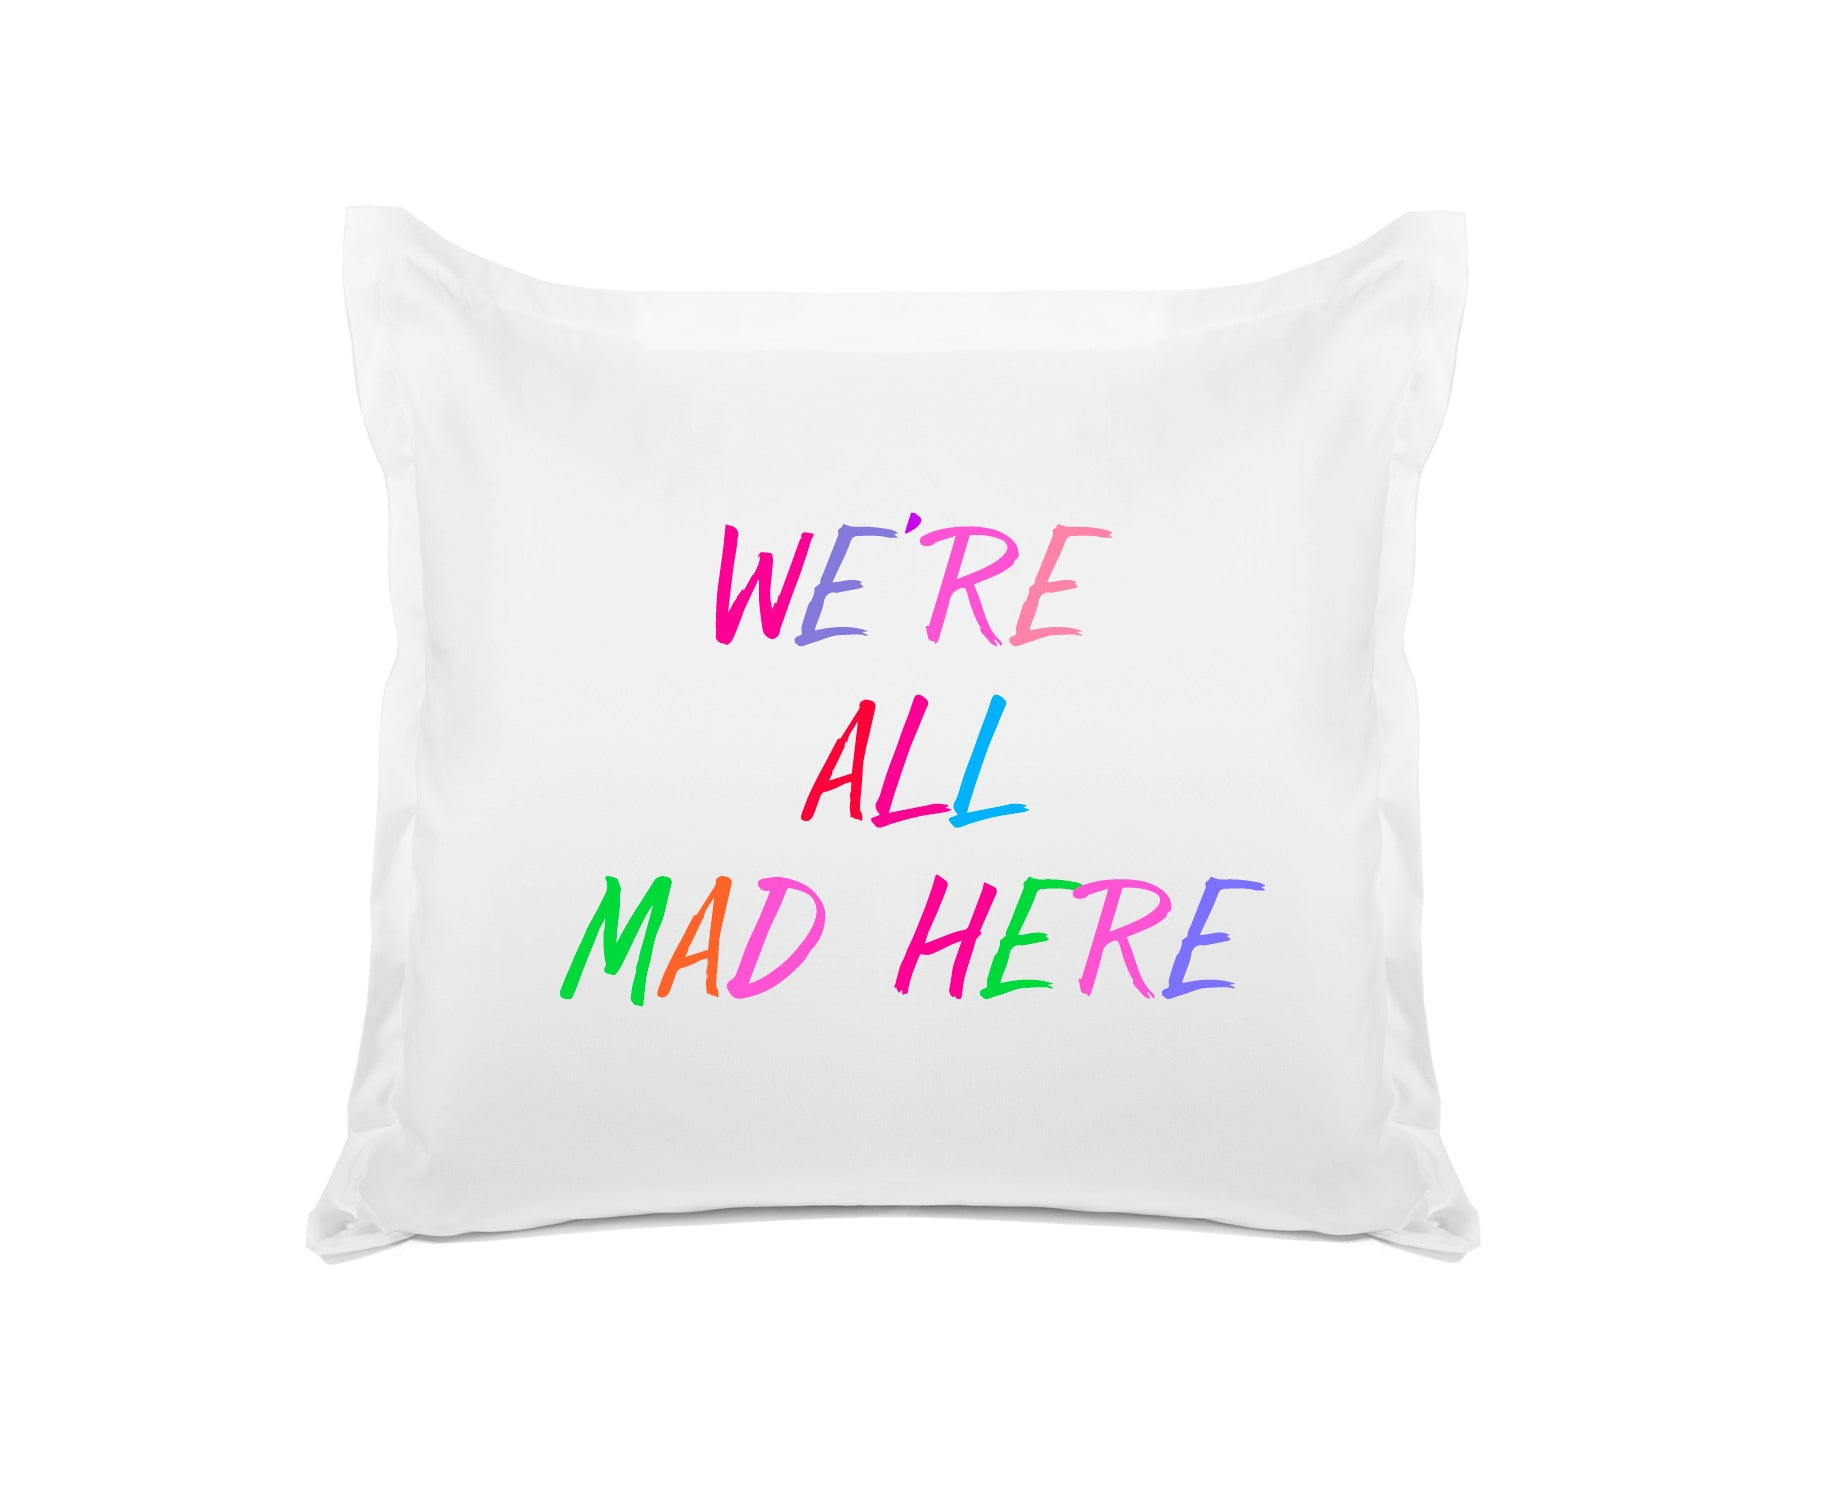 WE'RE ALL MAD HERE quote pillow Di Lewis bedroom decor